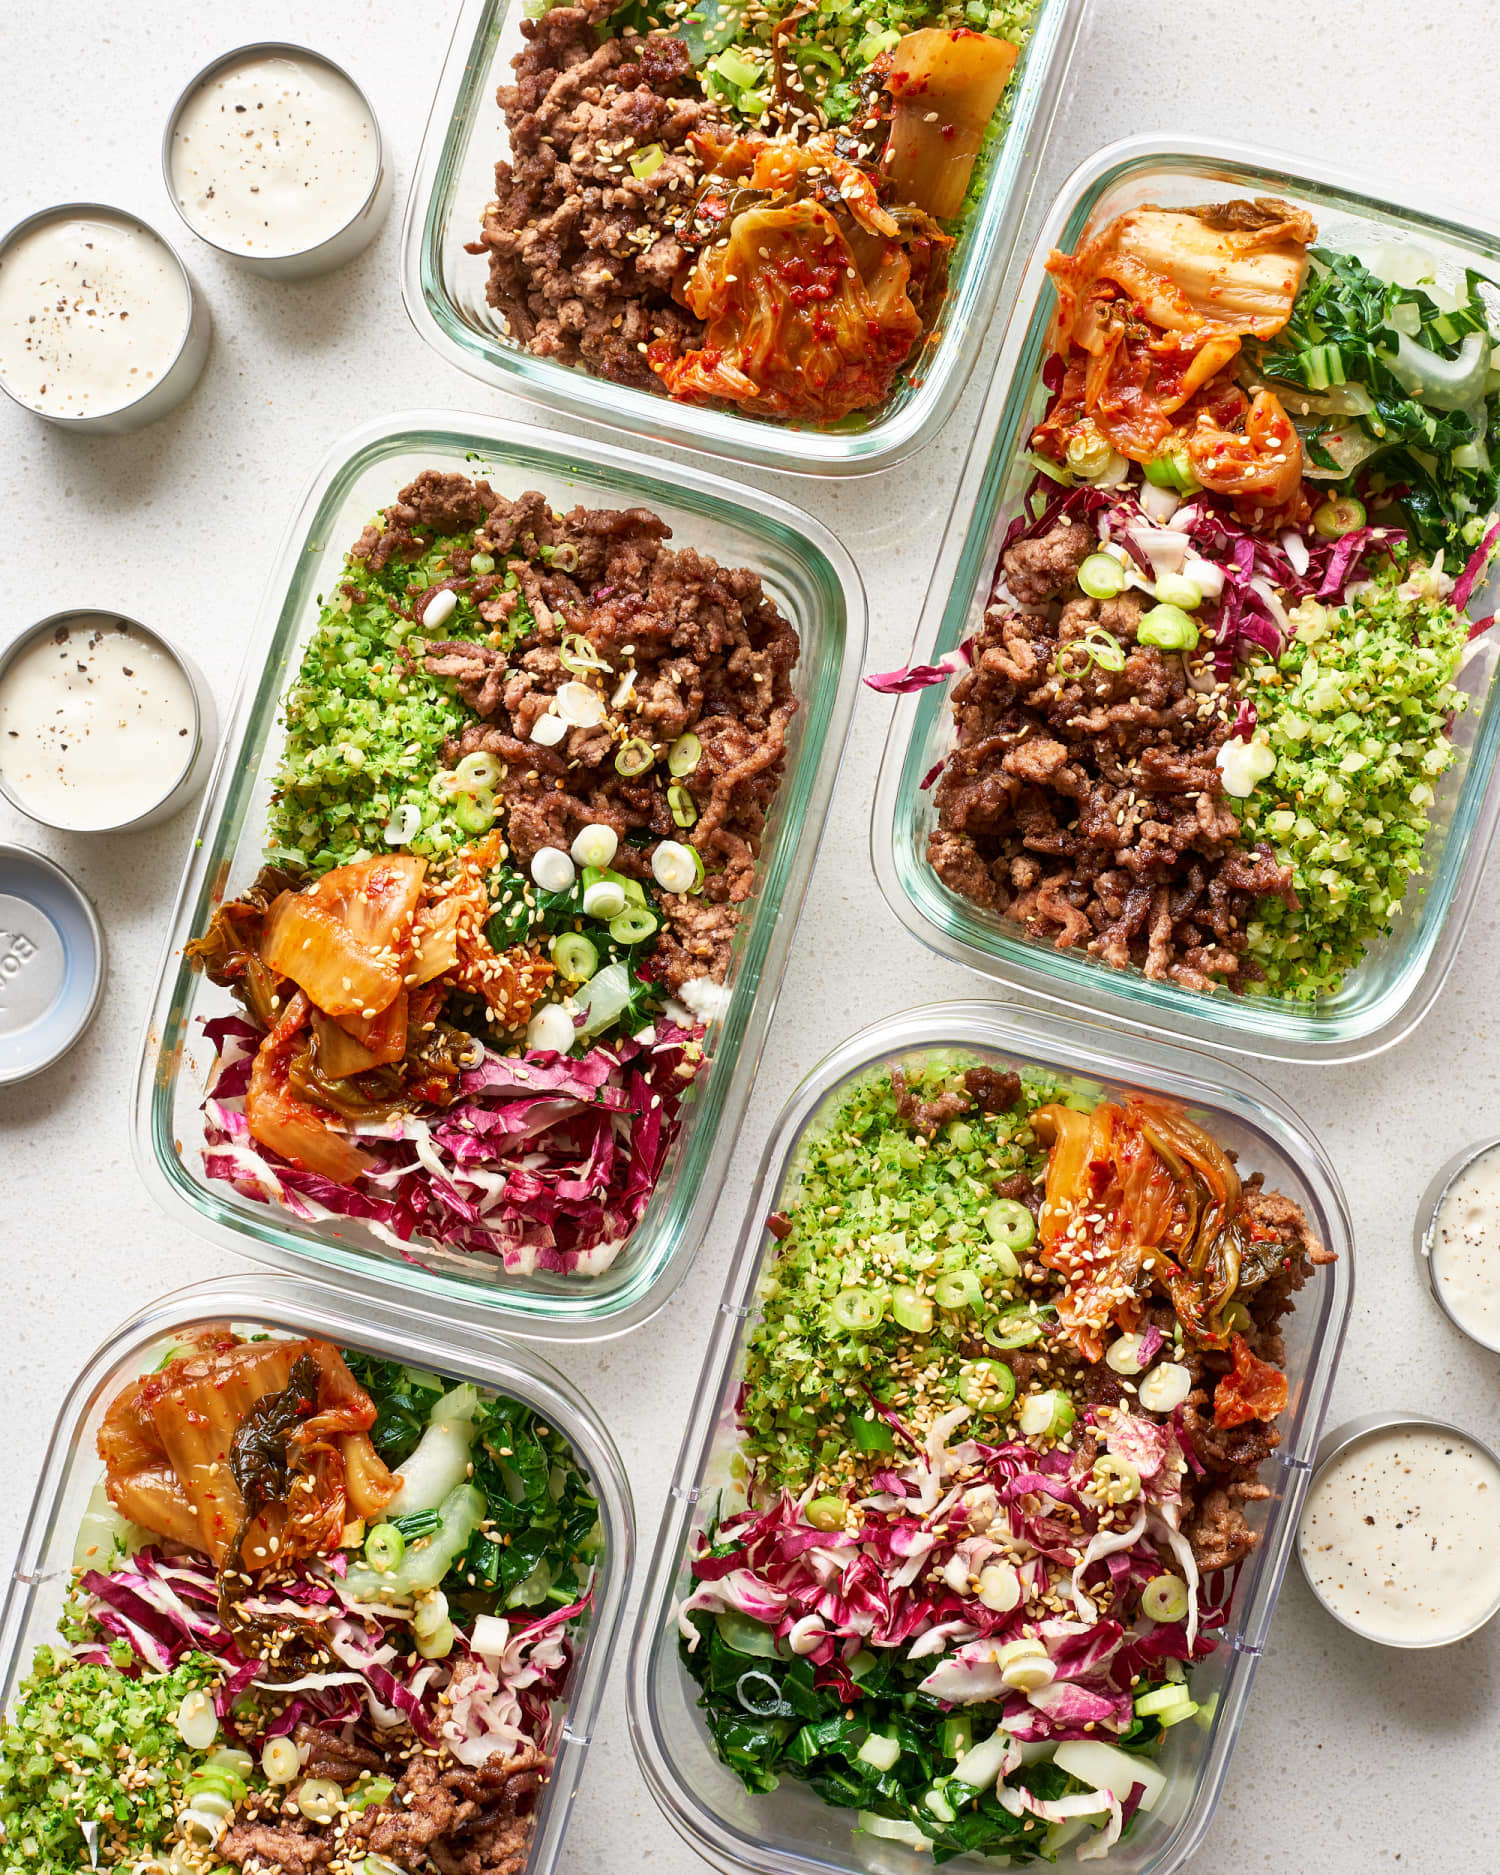 Meal Prep Plan: A Week of Easy Low-Carb Meals